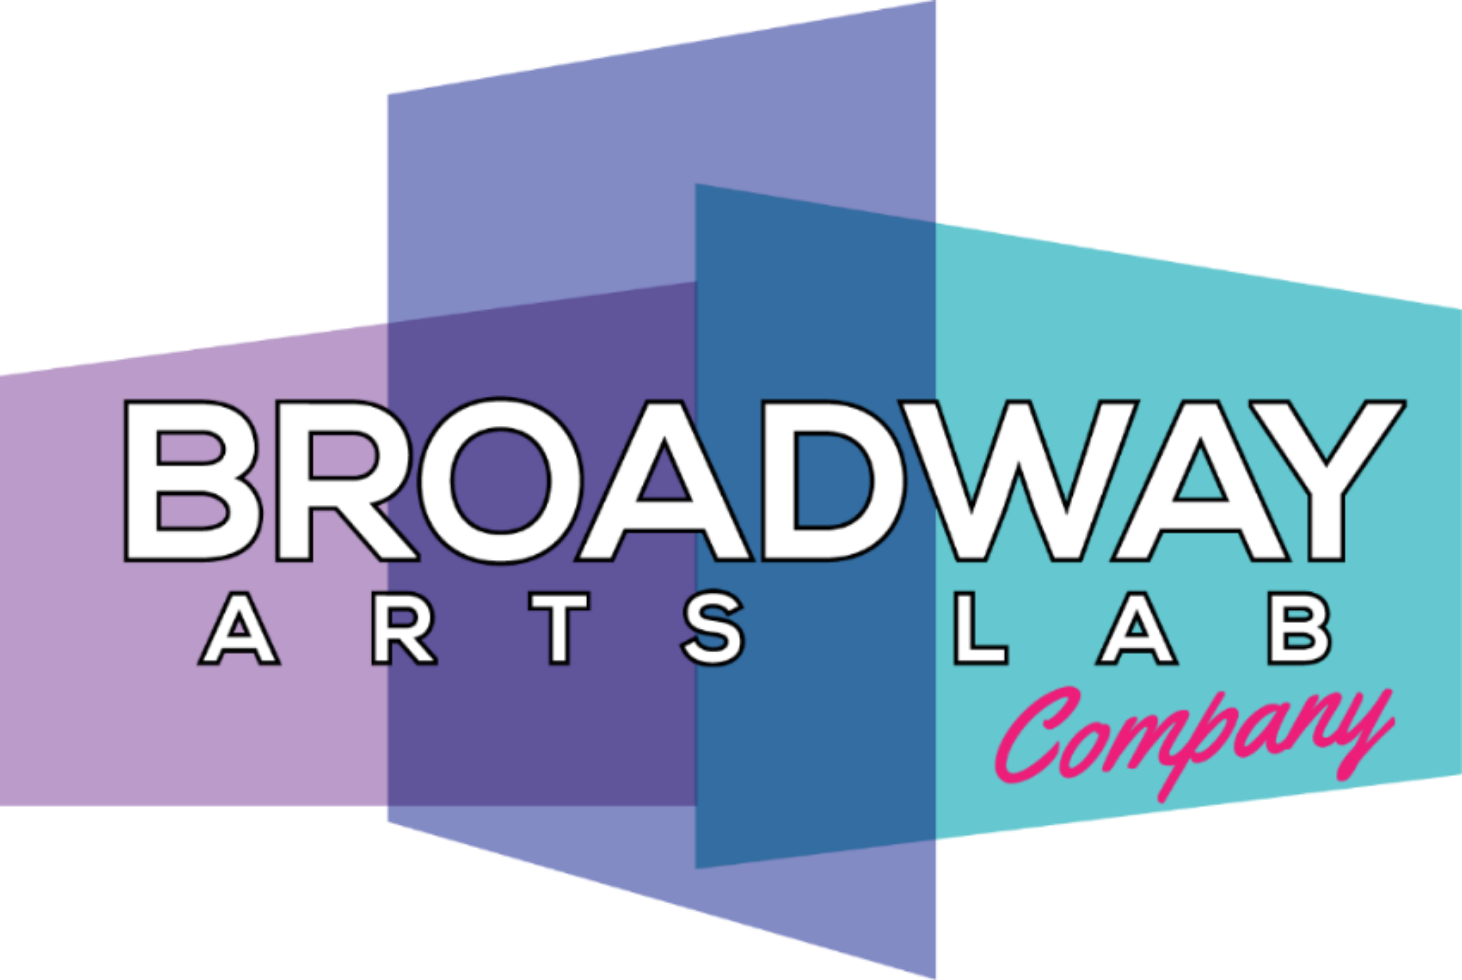 BROADWAY ARTS LAB